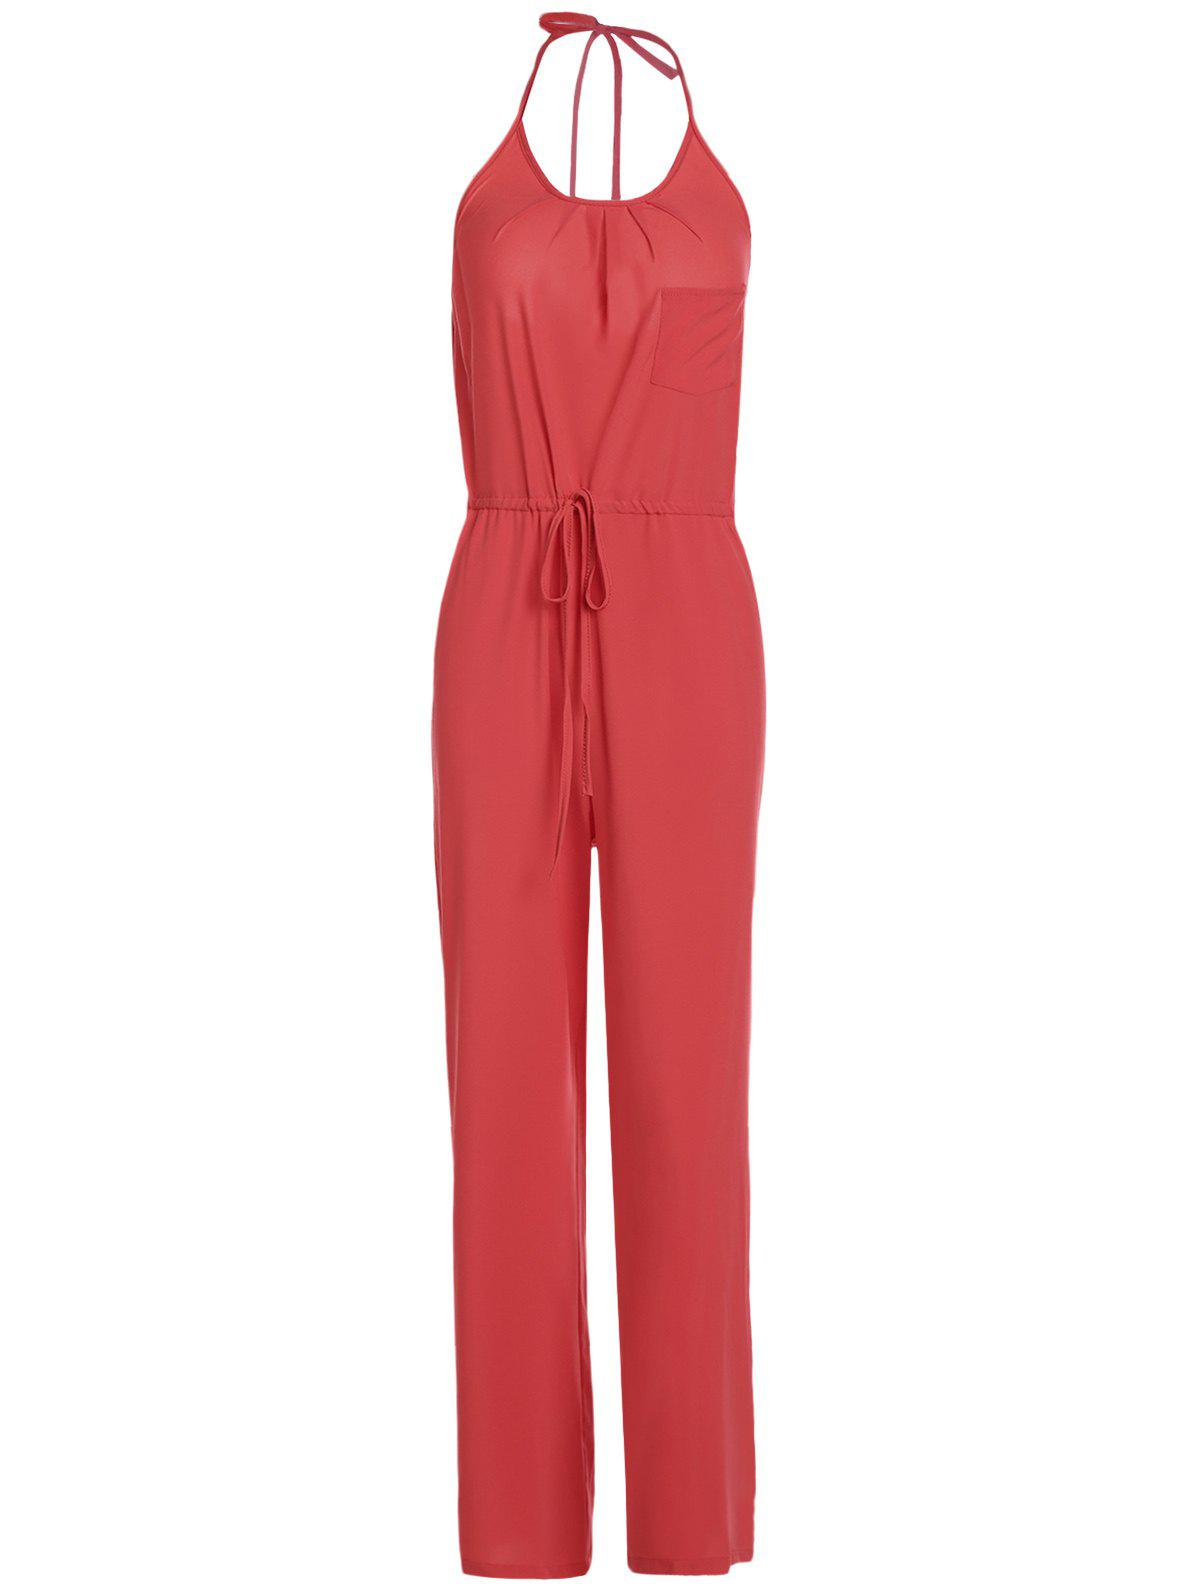 Fancy Chic Solid Color Spaghetti Strap Wide Leg Loose Jumpsuit For Women